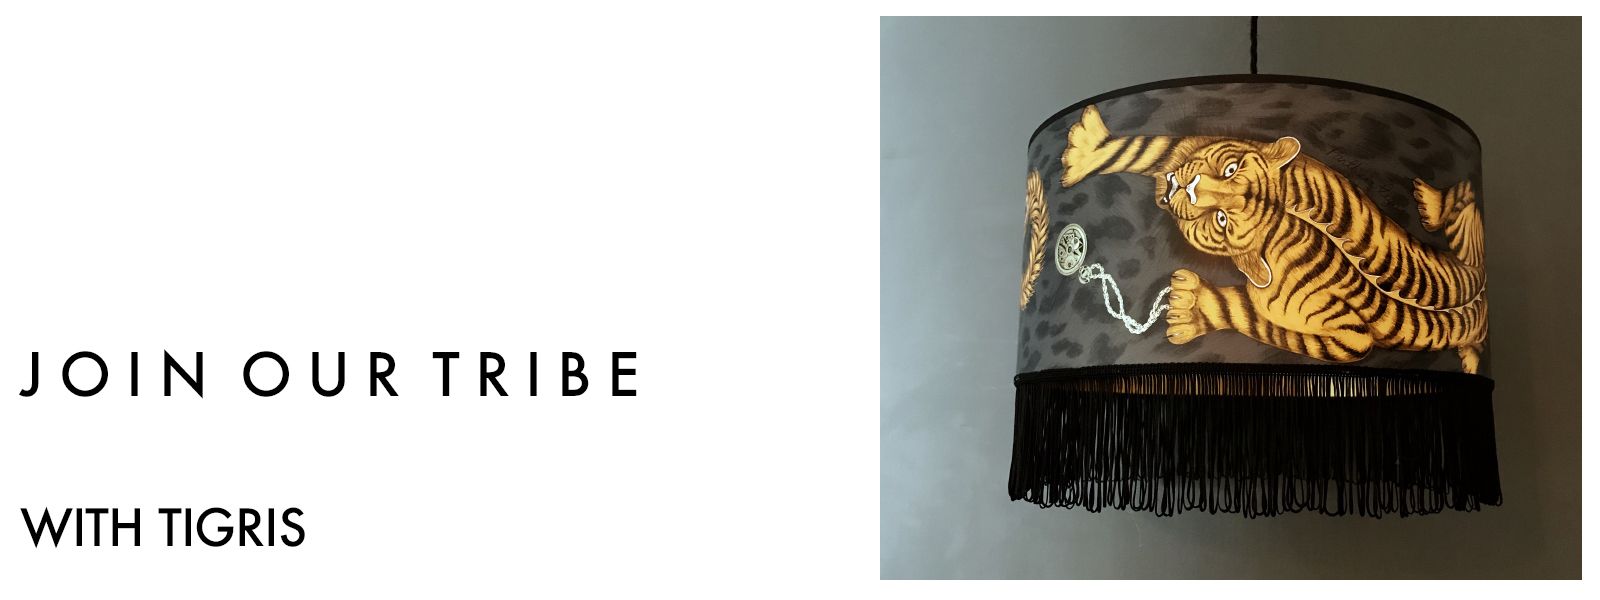 Wild Tribe Lampshade Collection